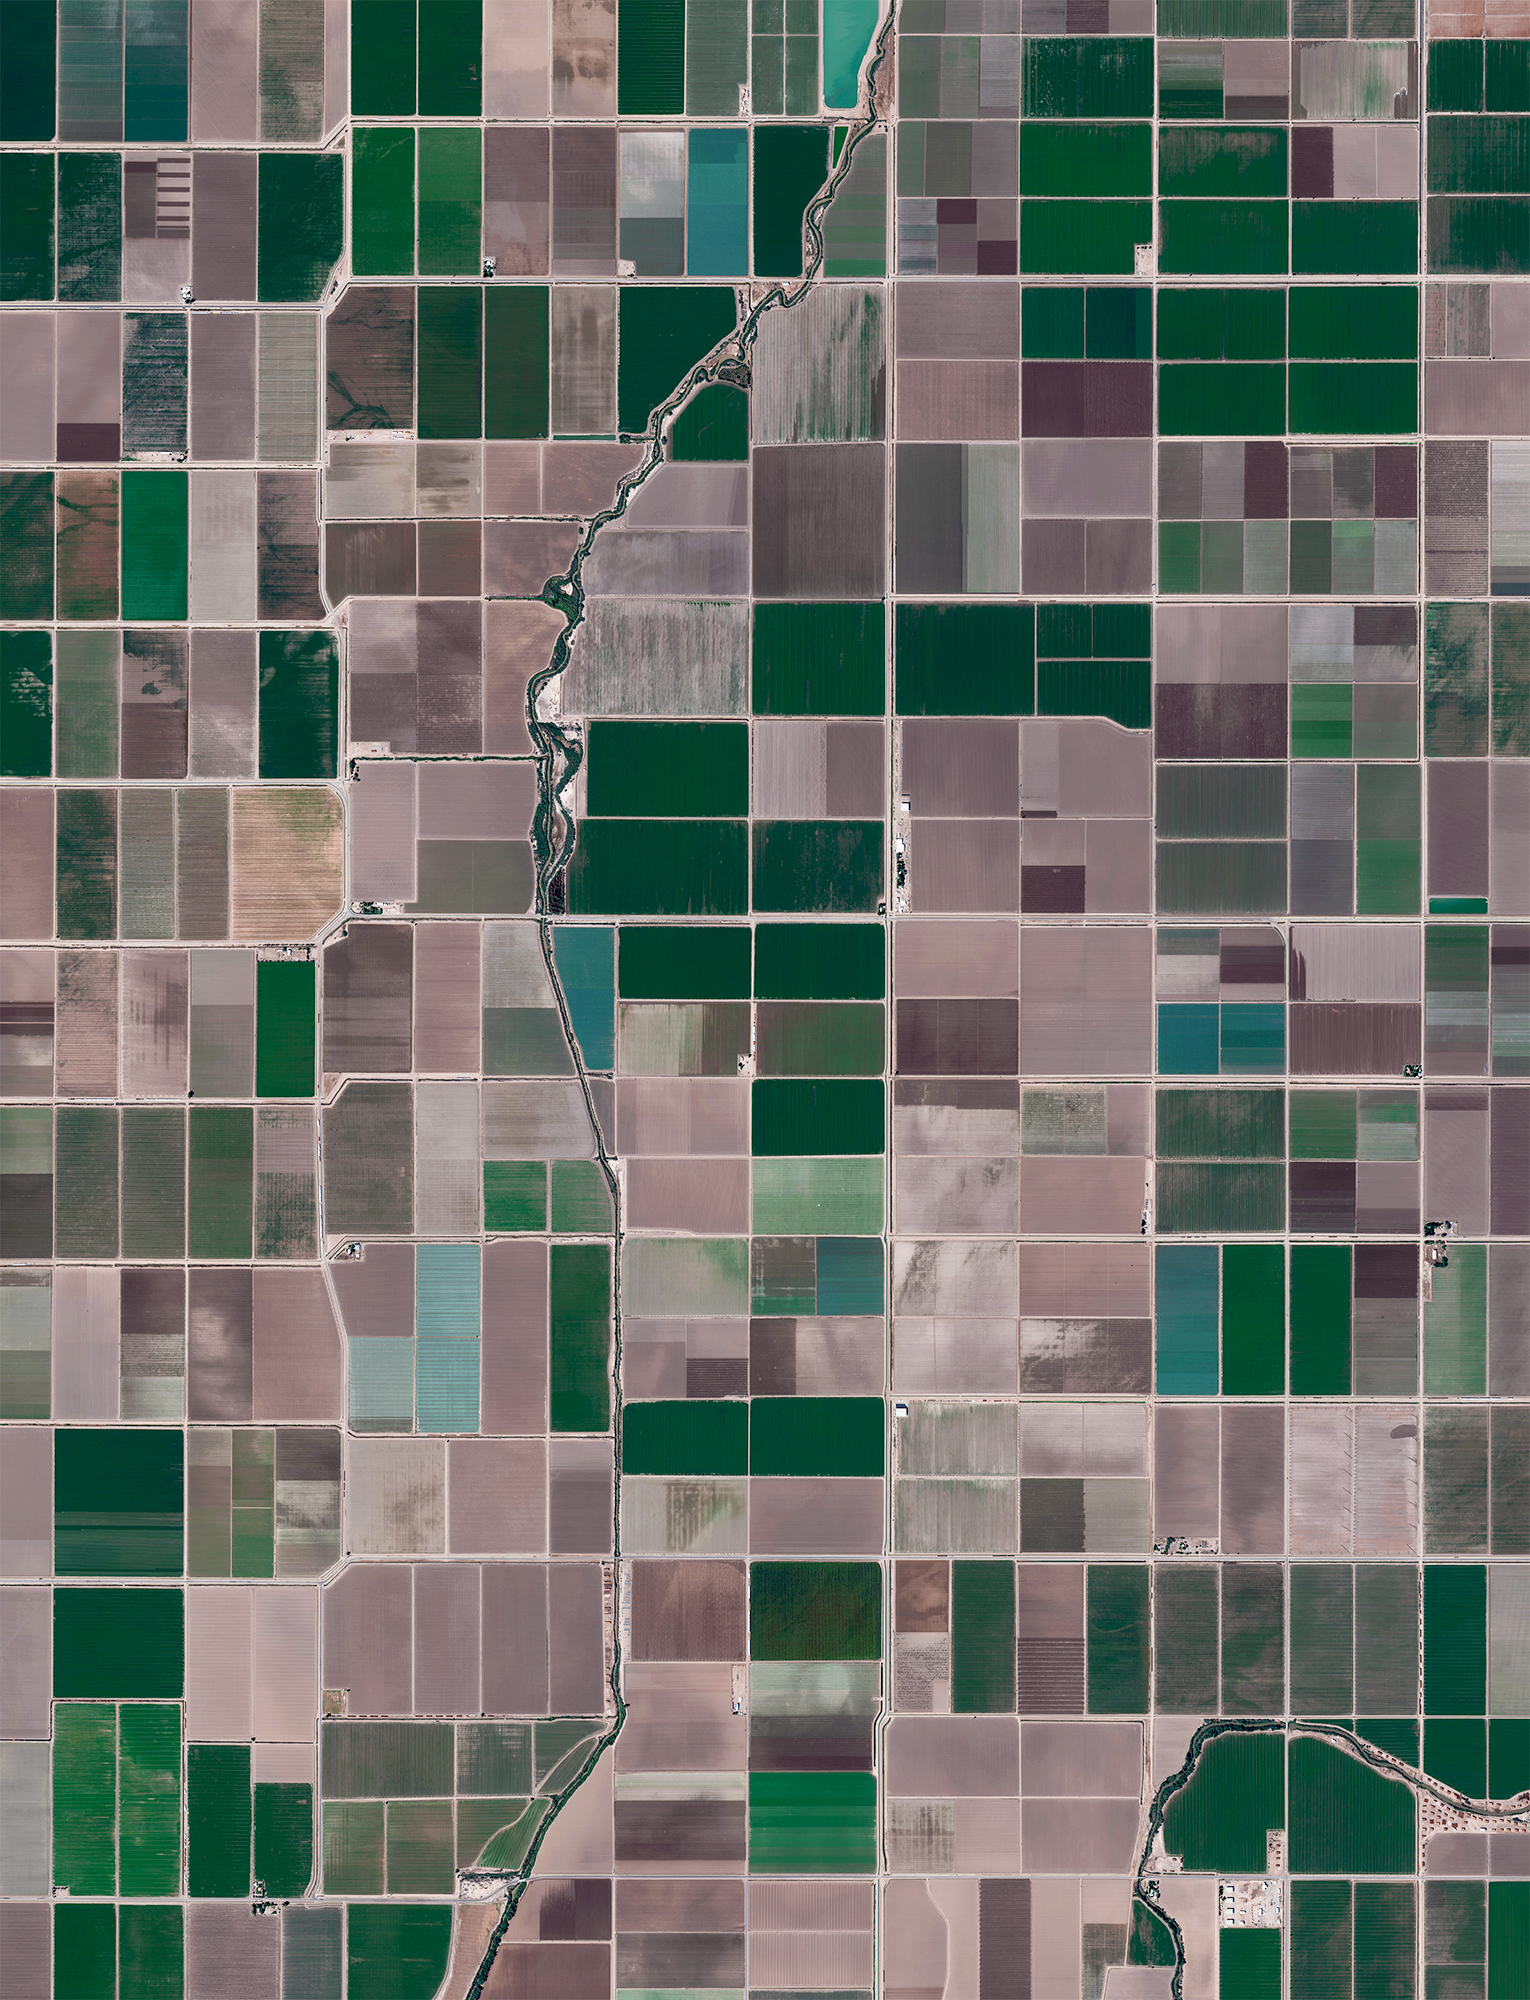 Agricultural development is seen in Calipatria, California, USA. At an elevation of 180 feet (55 m) below sea level, the city has the lowest elevation in the western hemisphere.  33.11641, -115.62727